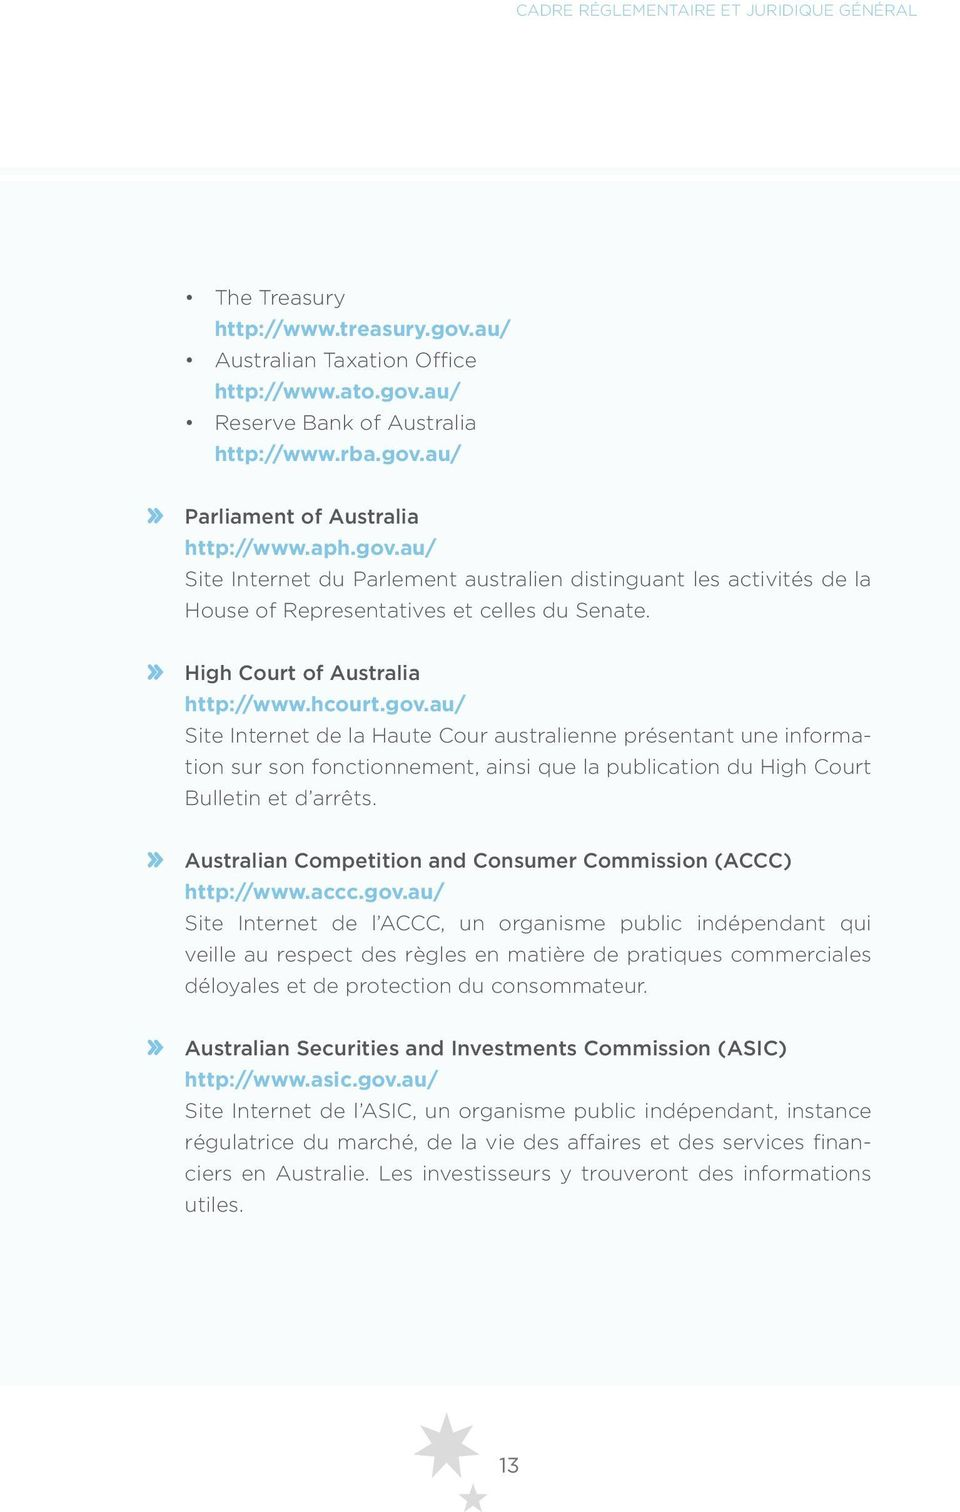 Australian Competition and Consumer Commission (ACCC) http://www.accc.gov.